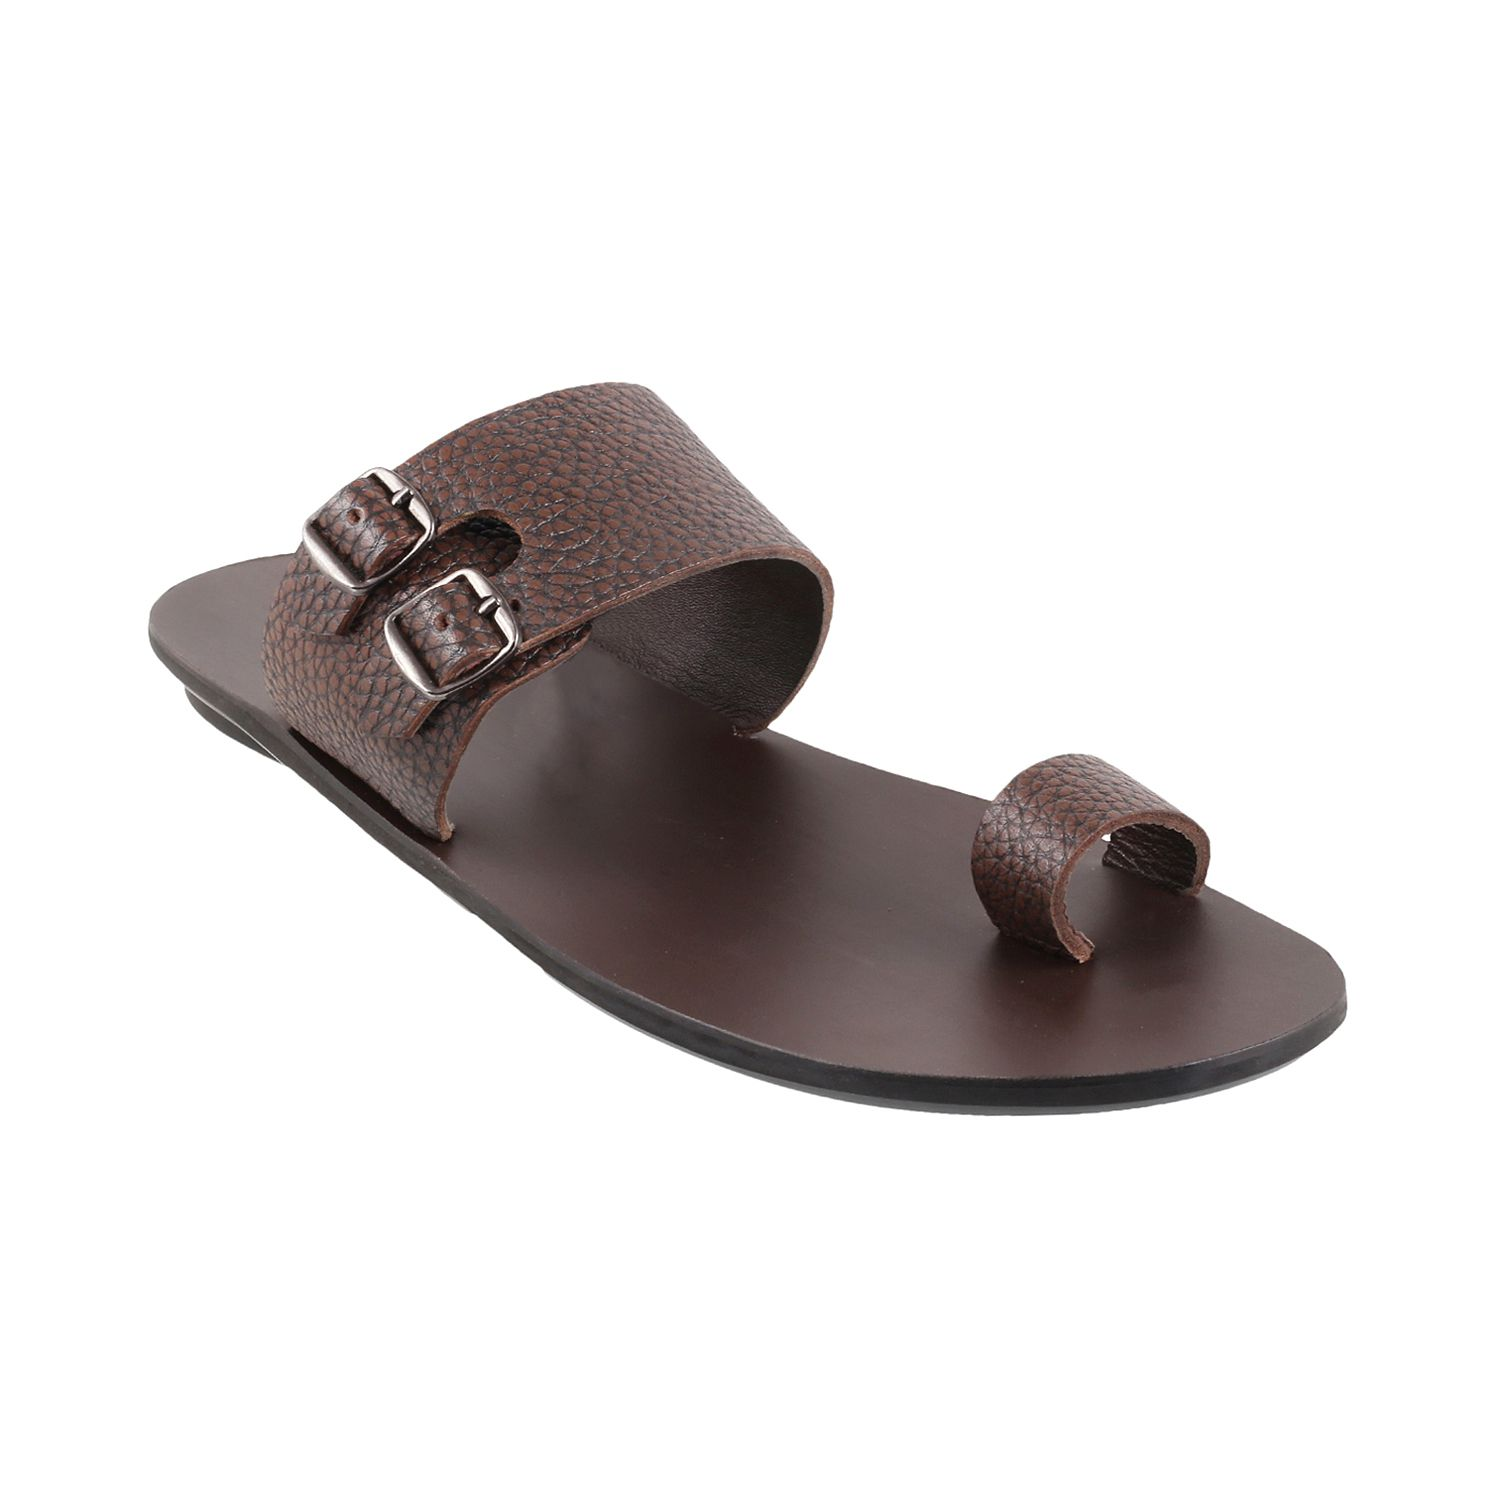 5223662d4a0 MOCHI MOCHI Men BROWN LEATHER BROWN Daily Slippers Price in India- Buy  MOCHI MOCHI Men BROWN LEATHER BROWN Daily Slippers Online at Snapdeal